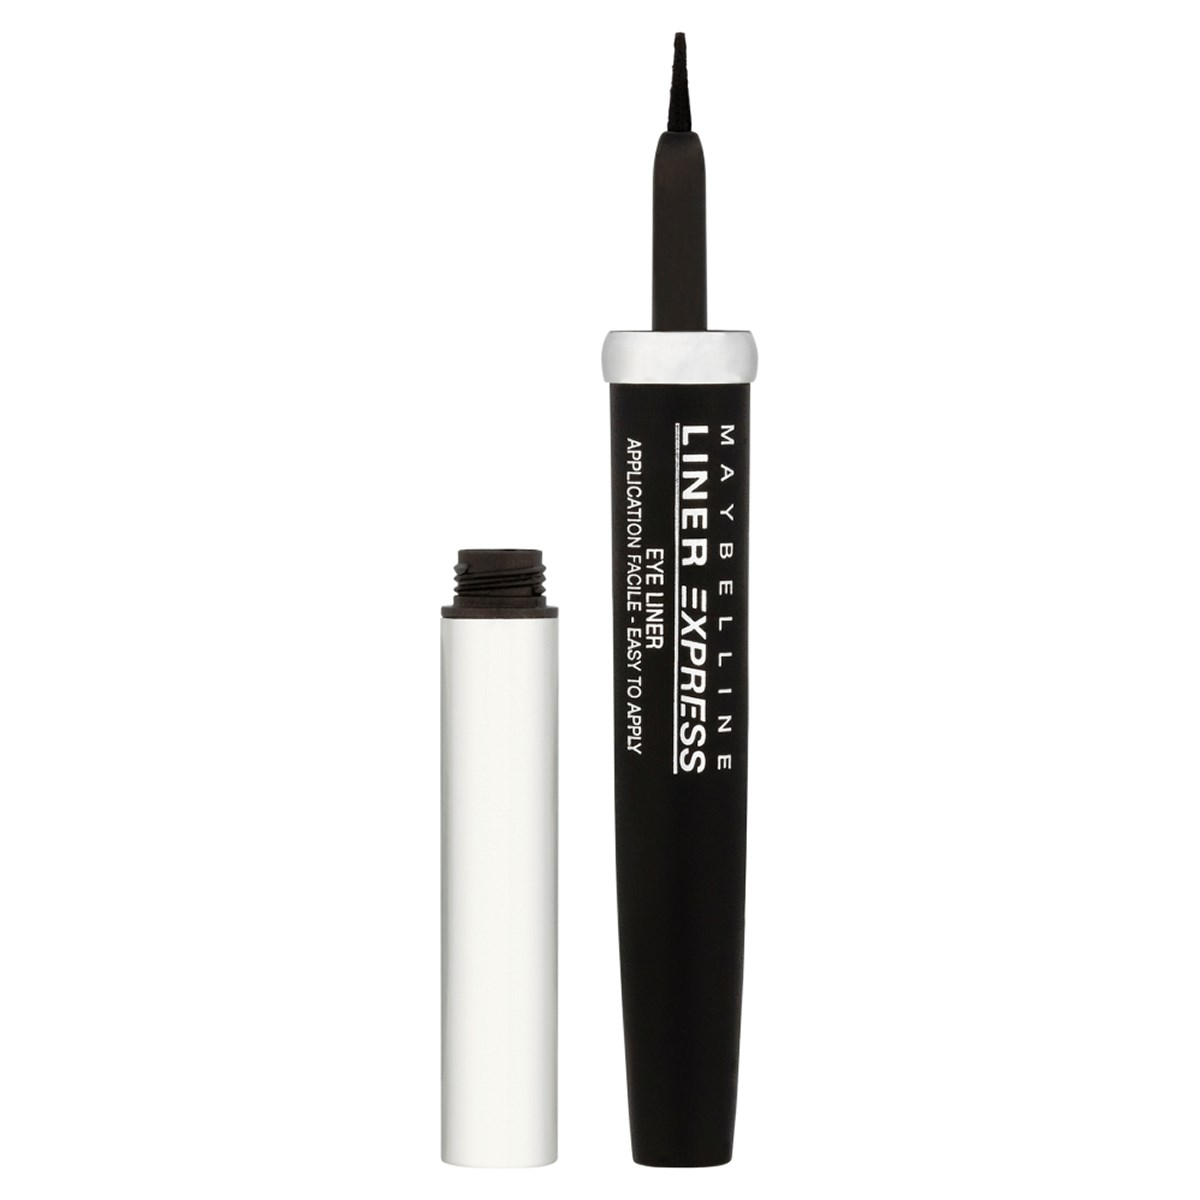 Maybelline Liner Express Eye Liner Black